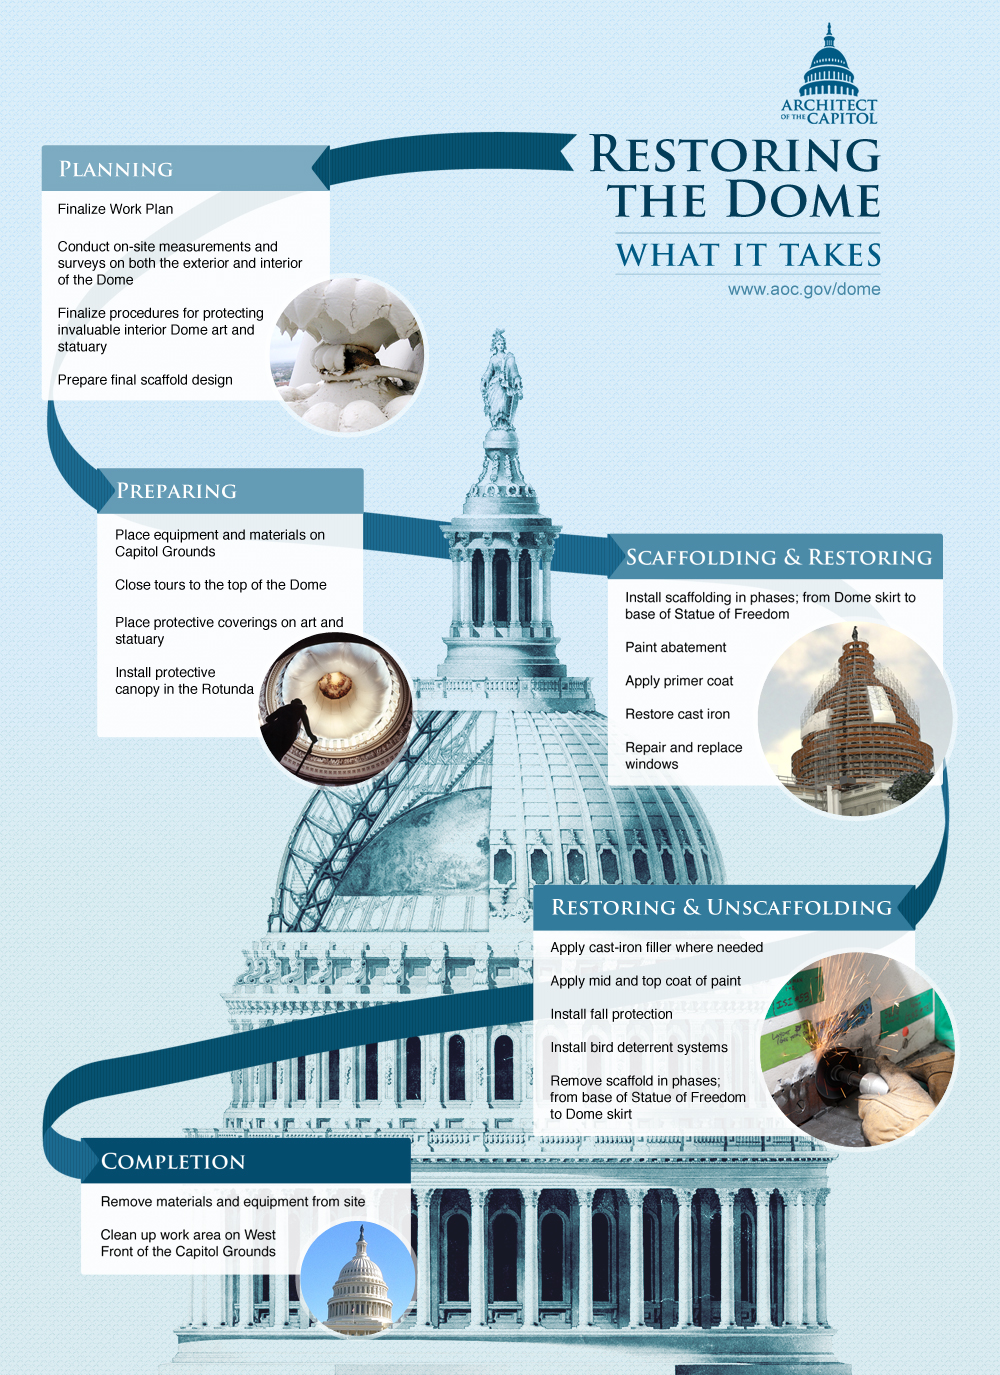 Infographic showing What it takes to restore the Dome